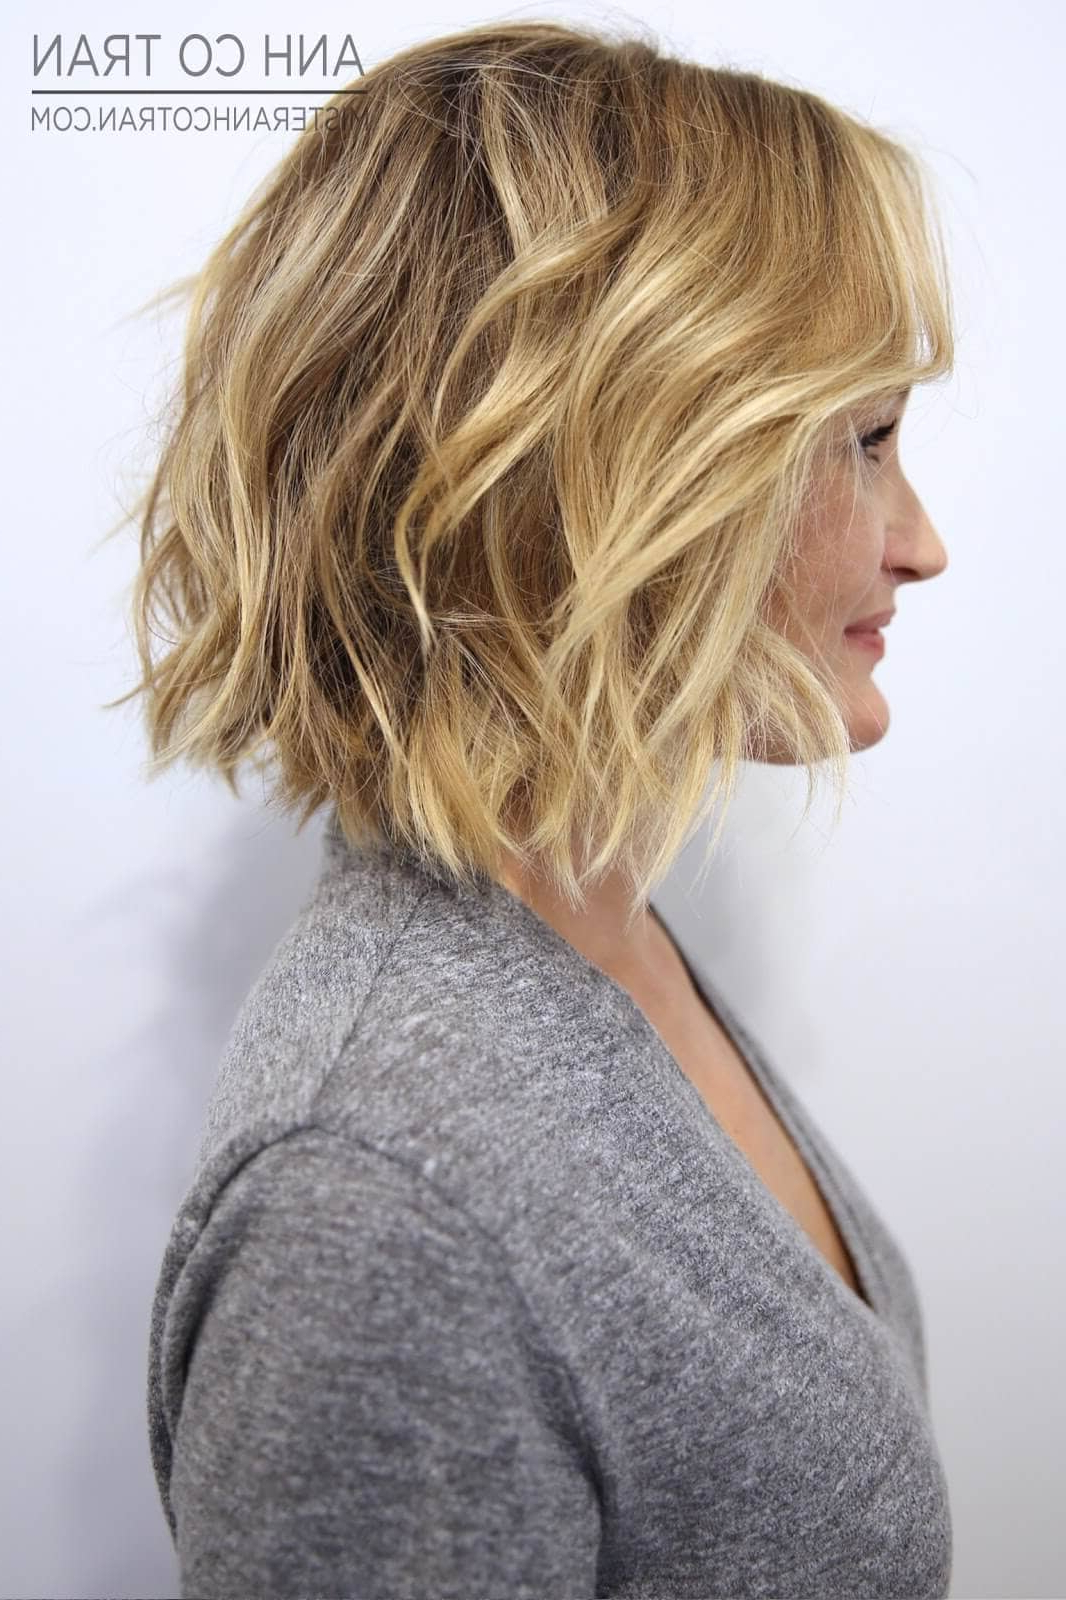 50 Ways To Wear Short Hair With Bangs For A Fresh New Look Inside 2019 Messy Short Bob Hairstyles With Side Swept Fringes (View 7 of 20)